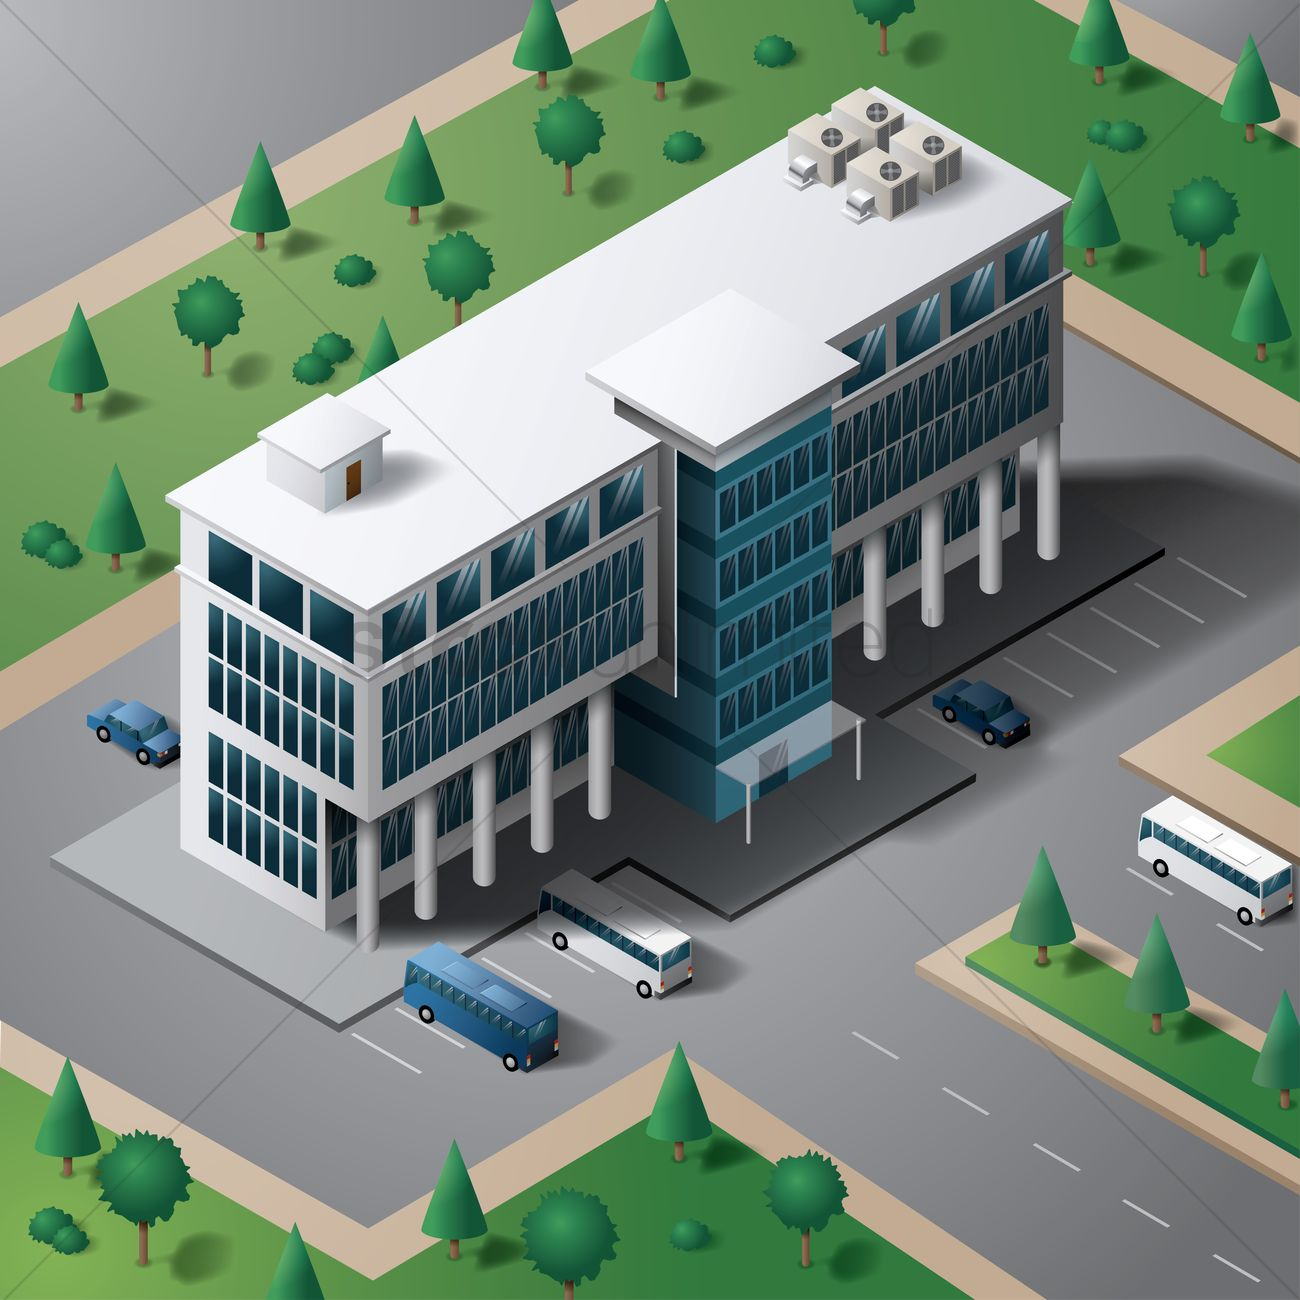 Isometric Building Vector Image 1547177 Stockunlimited